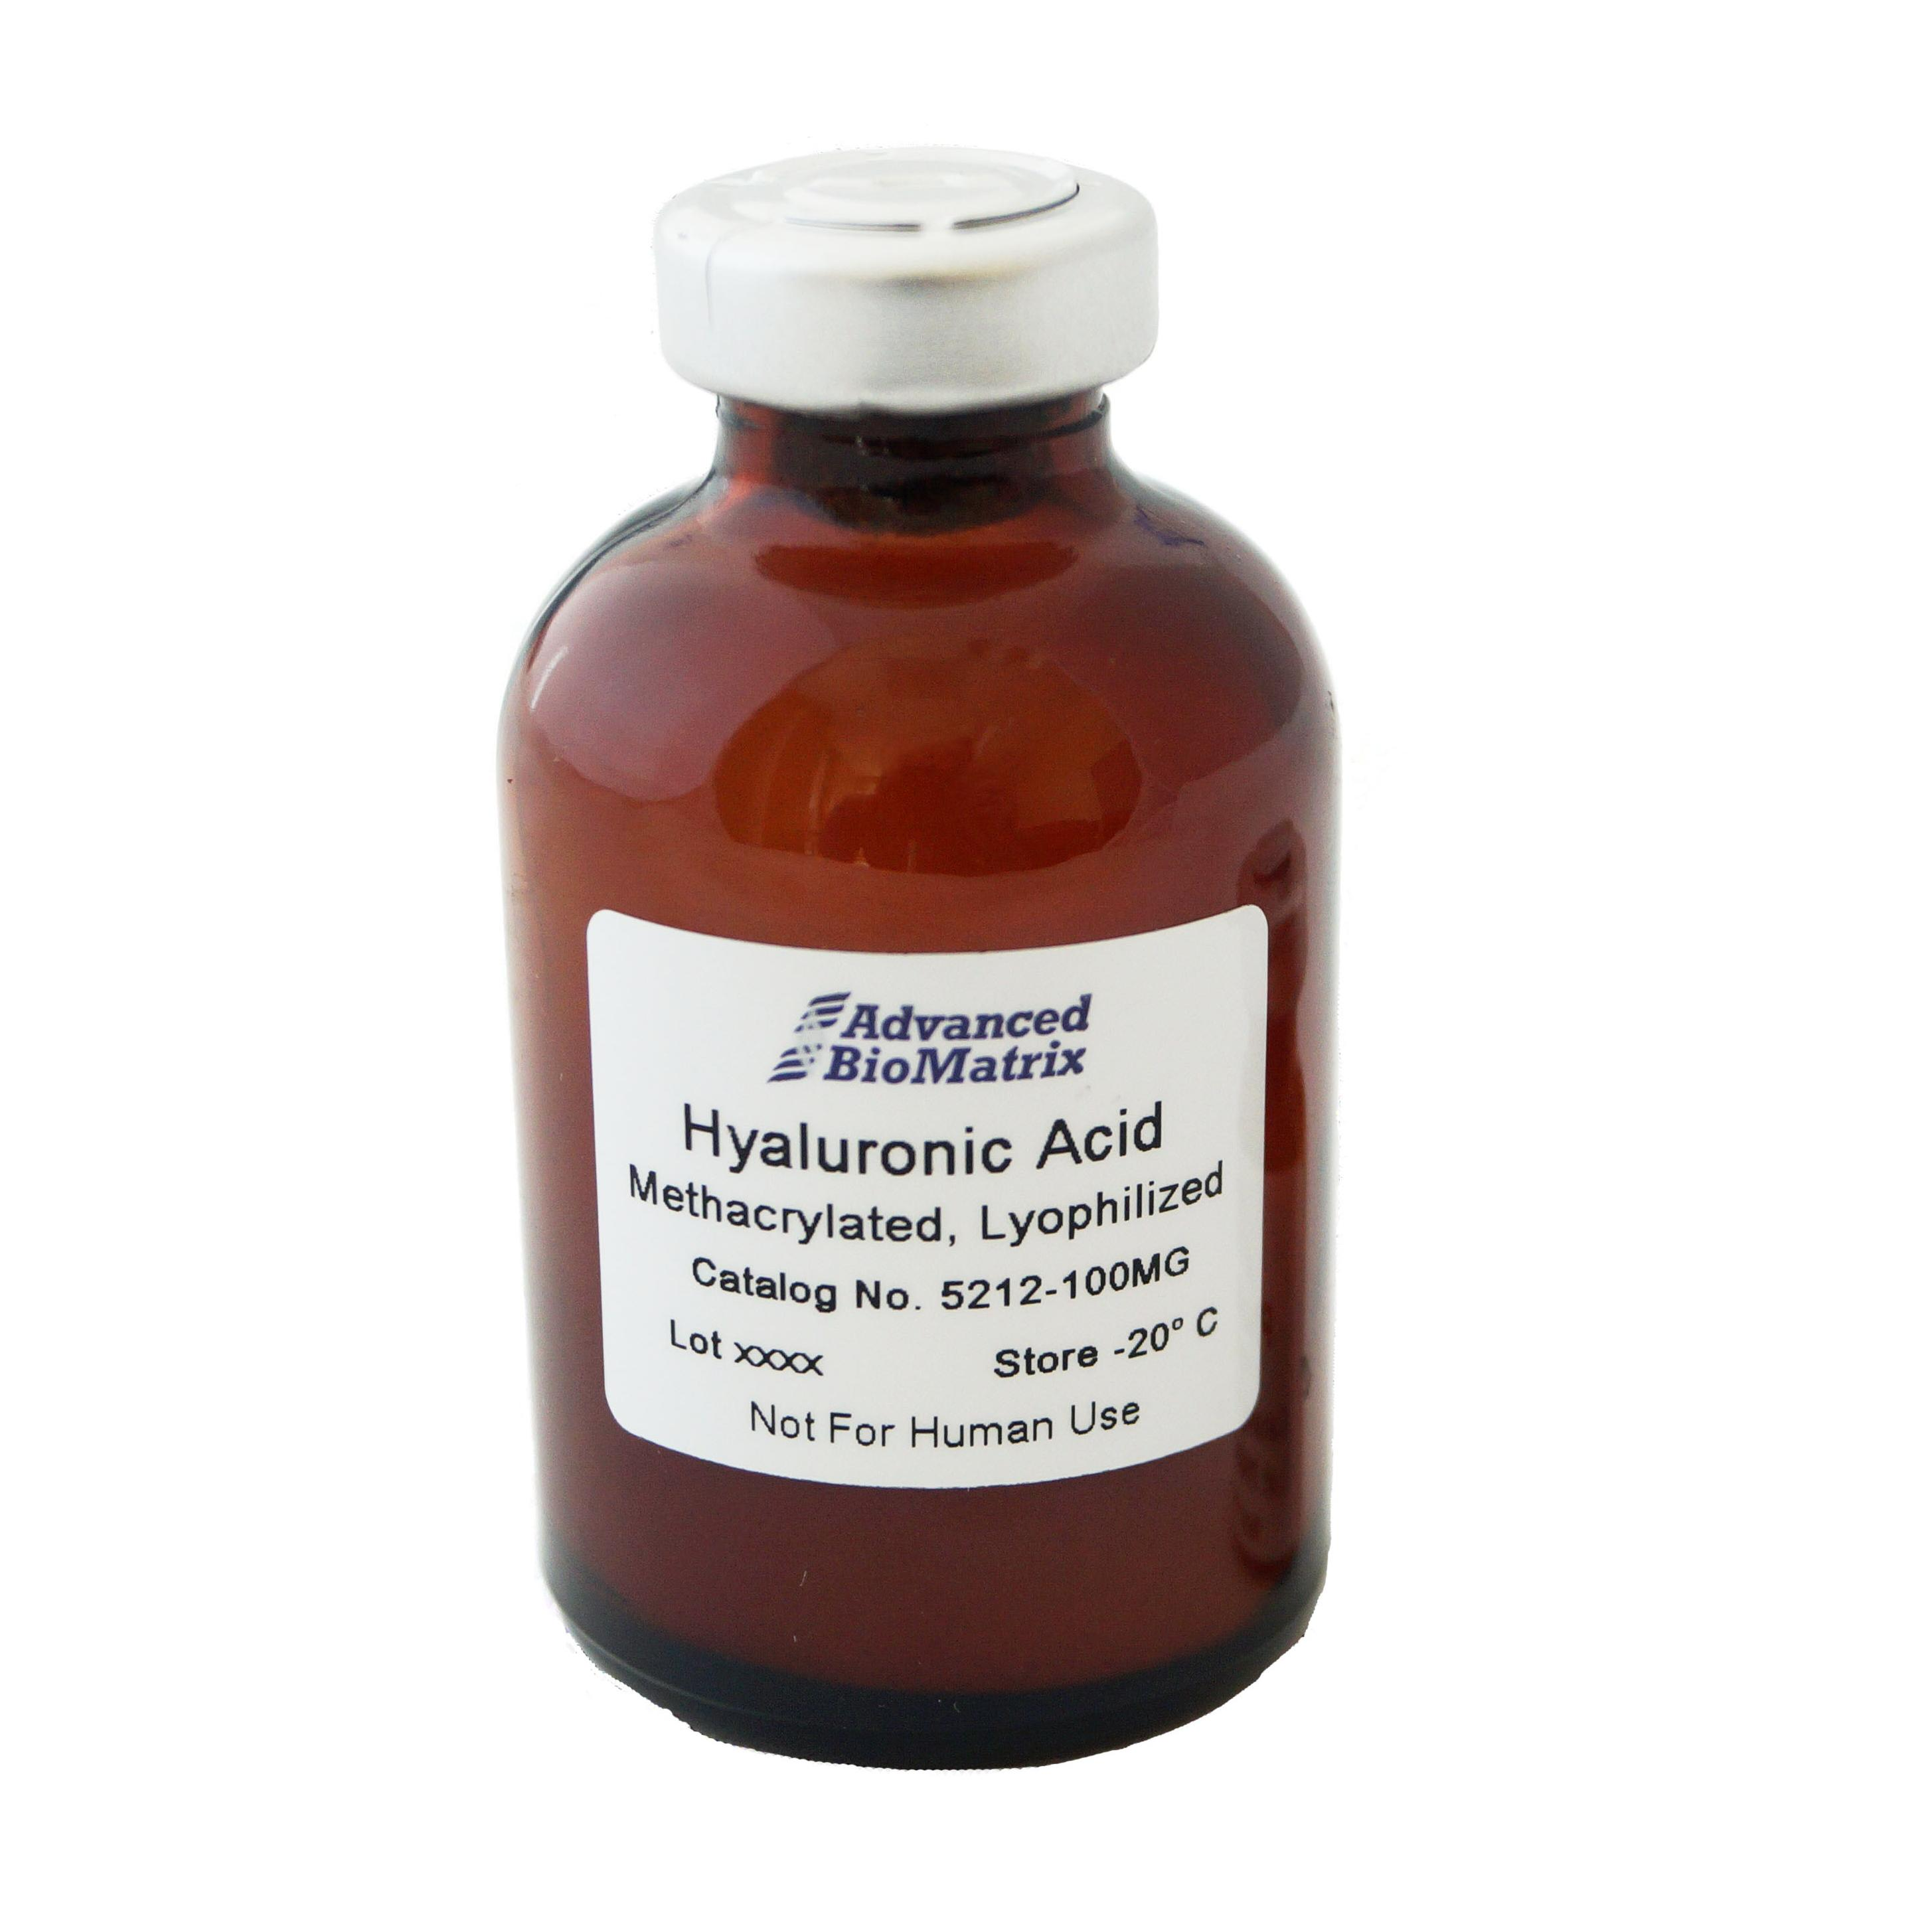 PhotoHA HAMA methacrylated hyaluronic acid from Advanced BioMatrix